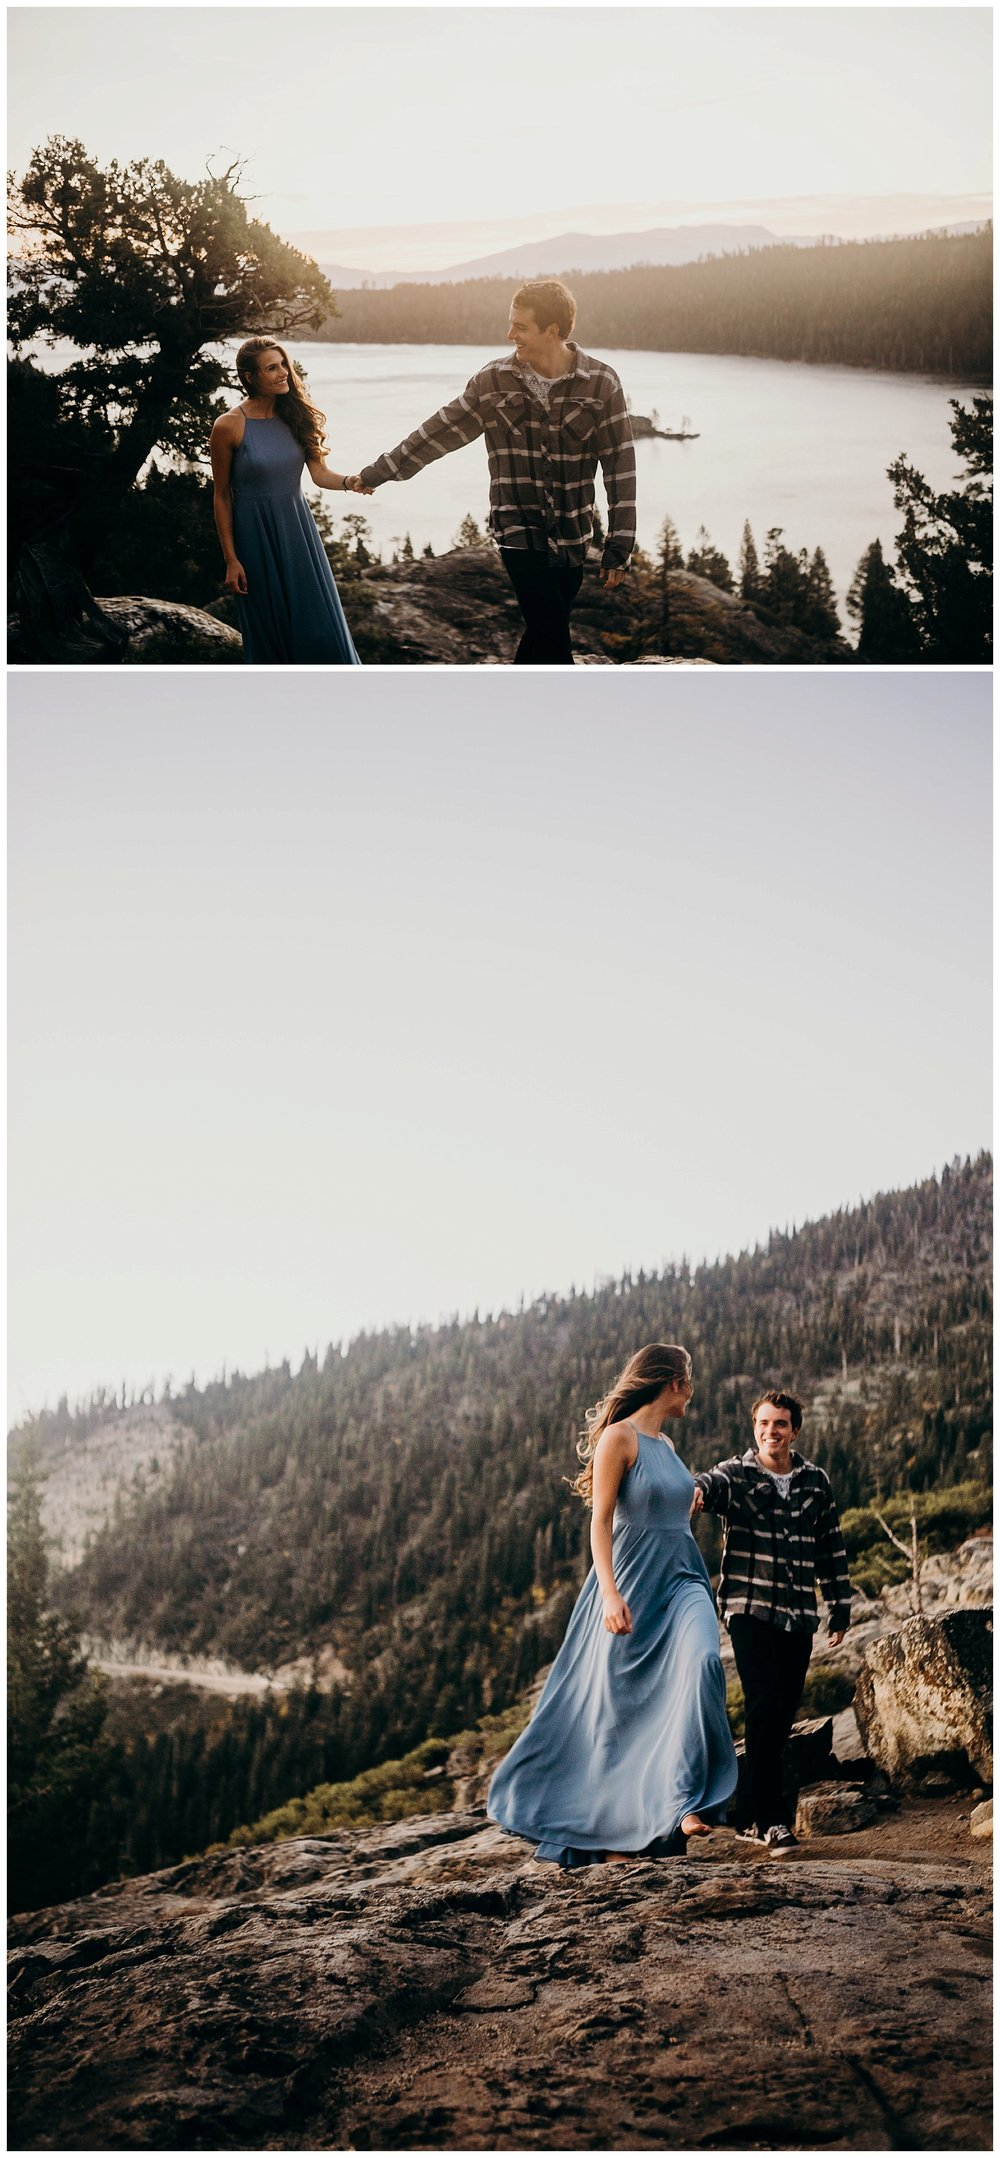 lake tahoe lifestyle photography - lake tahoe engagement photographer - lake tahoe elopement photographer - lake tahoe photographer - south lake tahoe photography-2.jpg